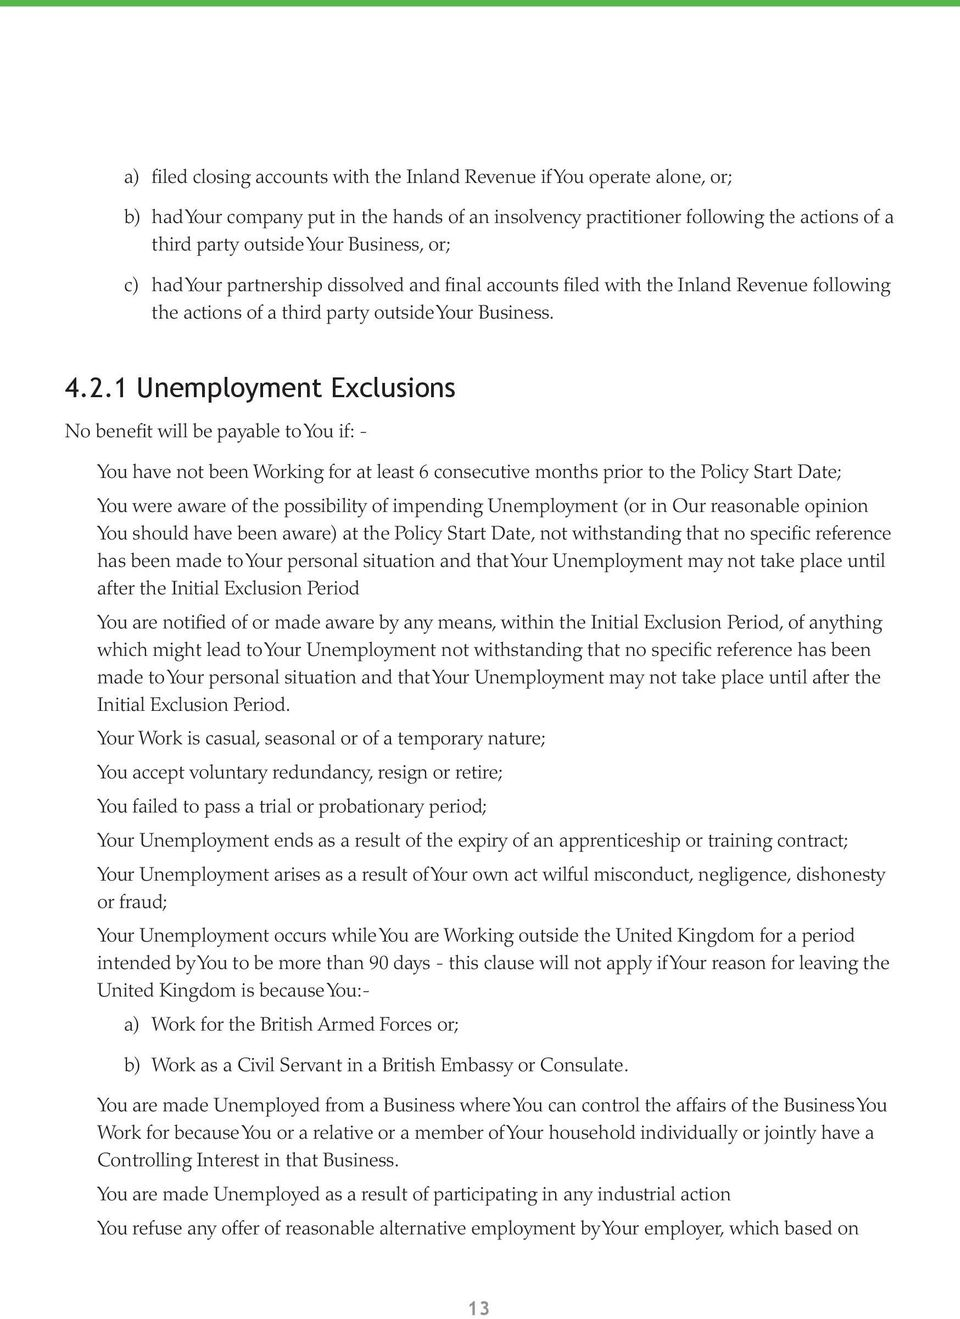 1 Unemployment Exclusions No benefit will be payable to You if: - You have not been Working for at least 6 consecutive months prior to the Policy Start Date; You were aware of the possibility of